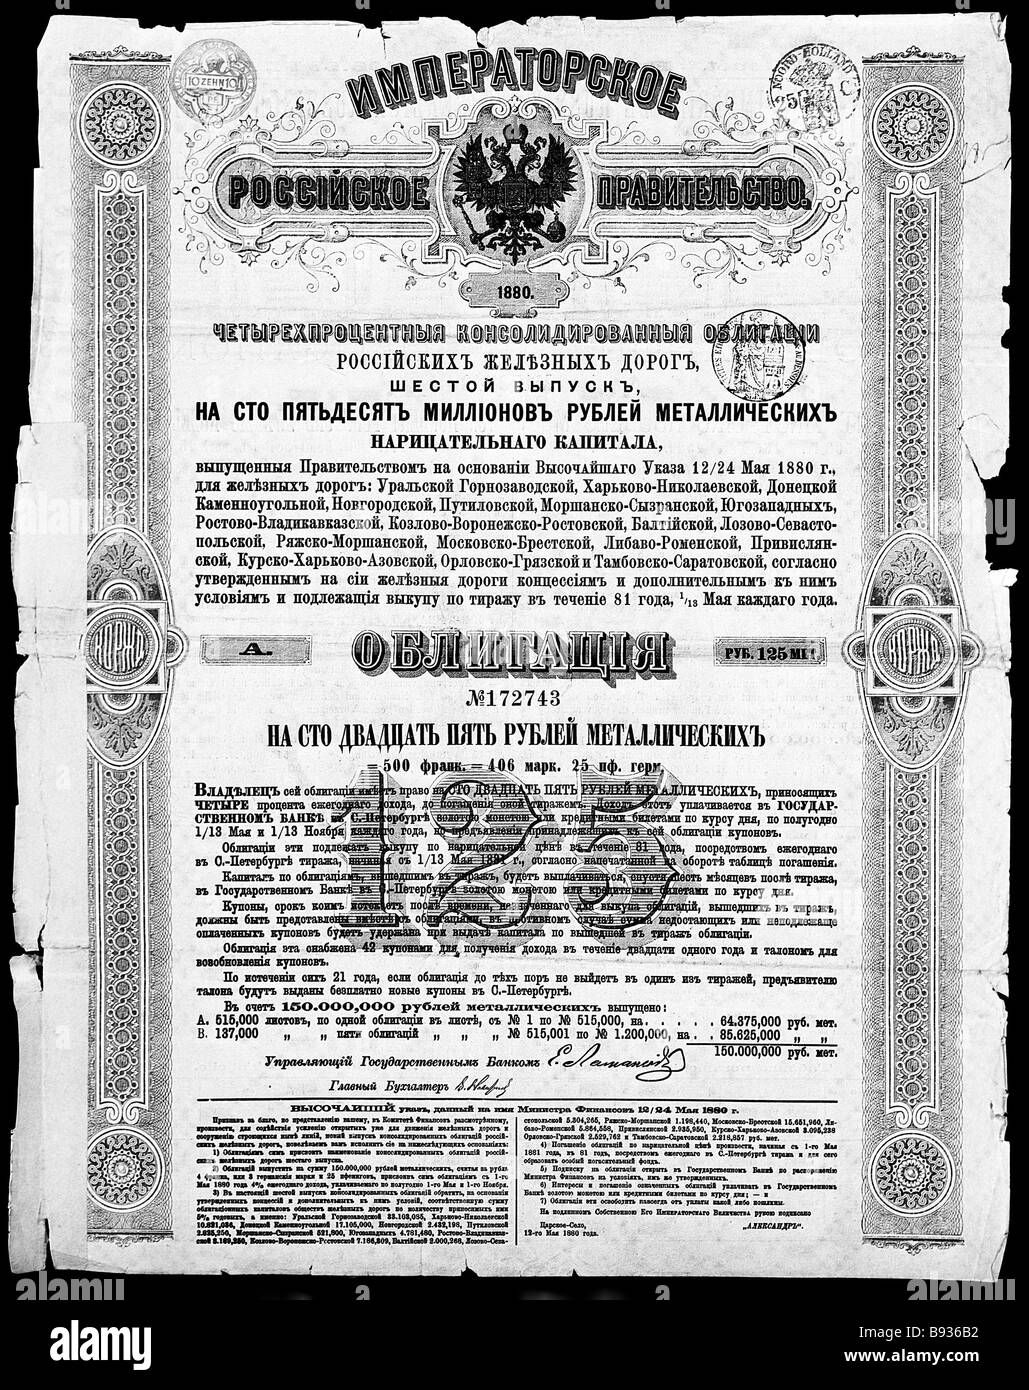 This bond for 125 rubles in coin was issued by the Russian Royal Government in 1880 - Stock Image